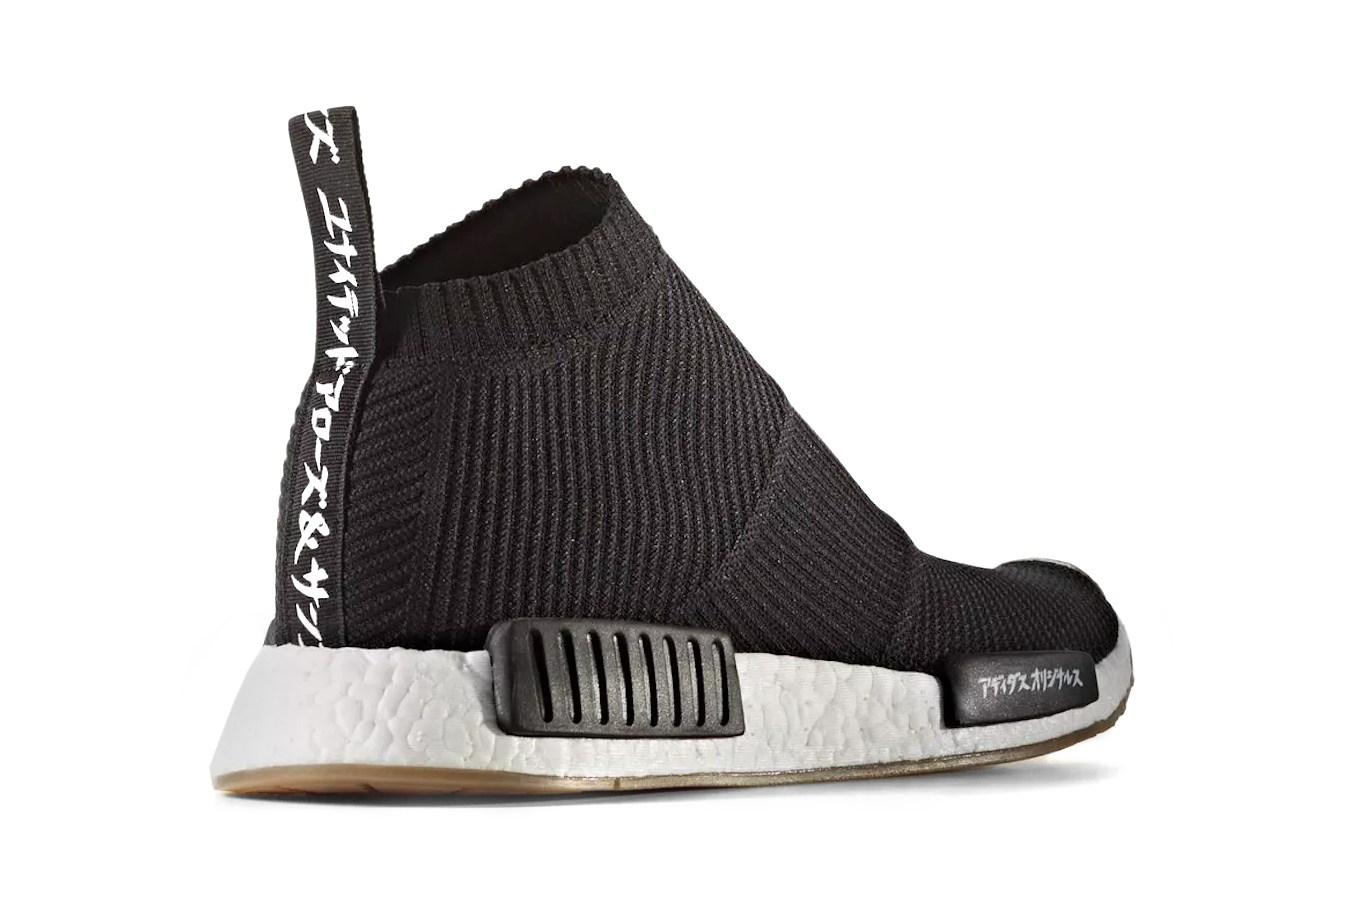 adidas-originals-united-arrows-sons-mikitype-nmd-city-sock-004